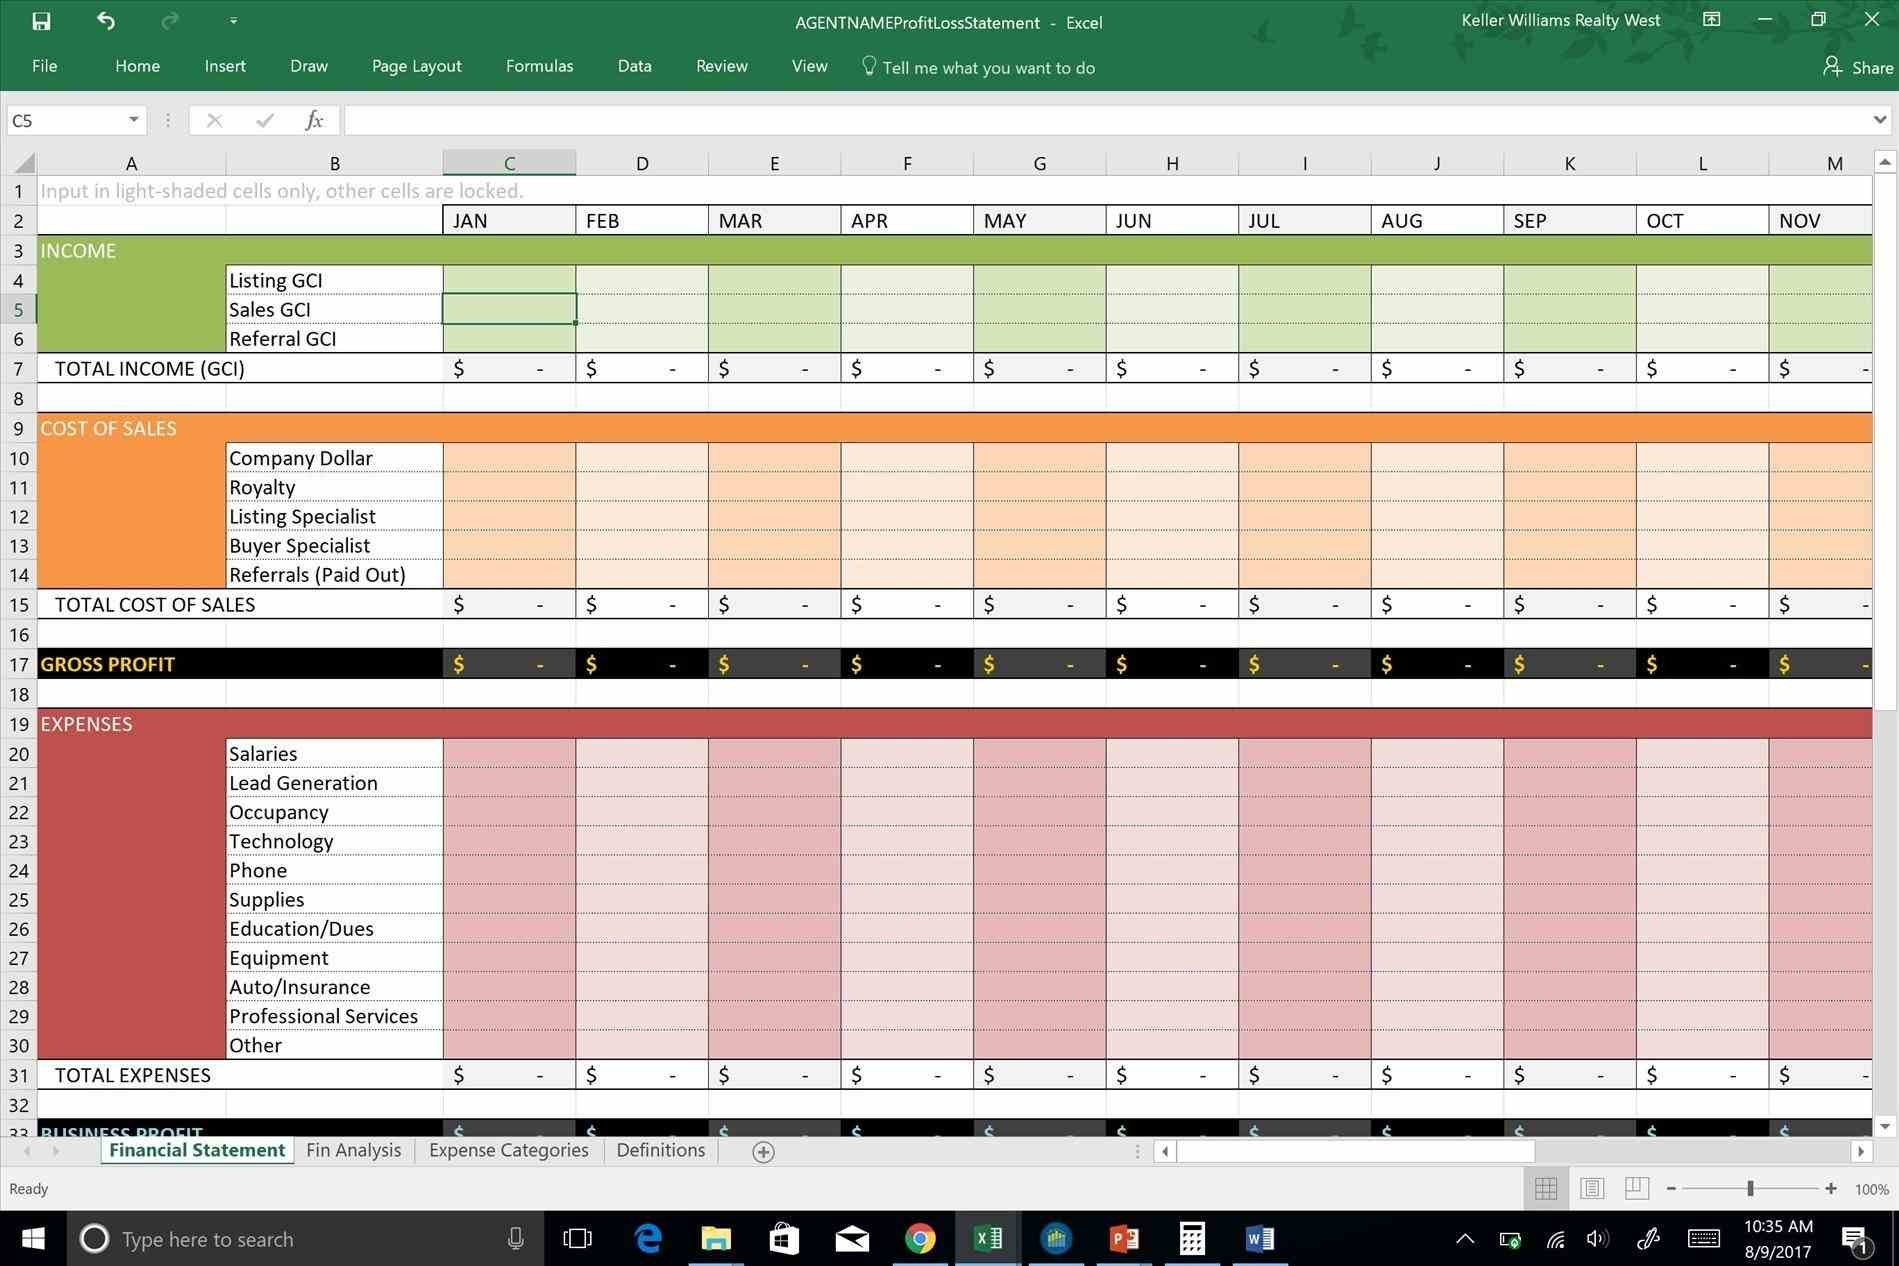 Commission Tracking Spreadsheet Spreadsheet Softwar Real Estate Commission Tracking Spreadsheet